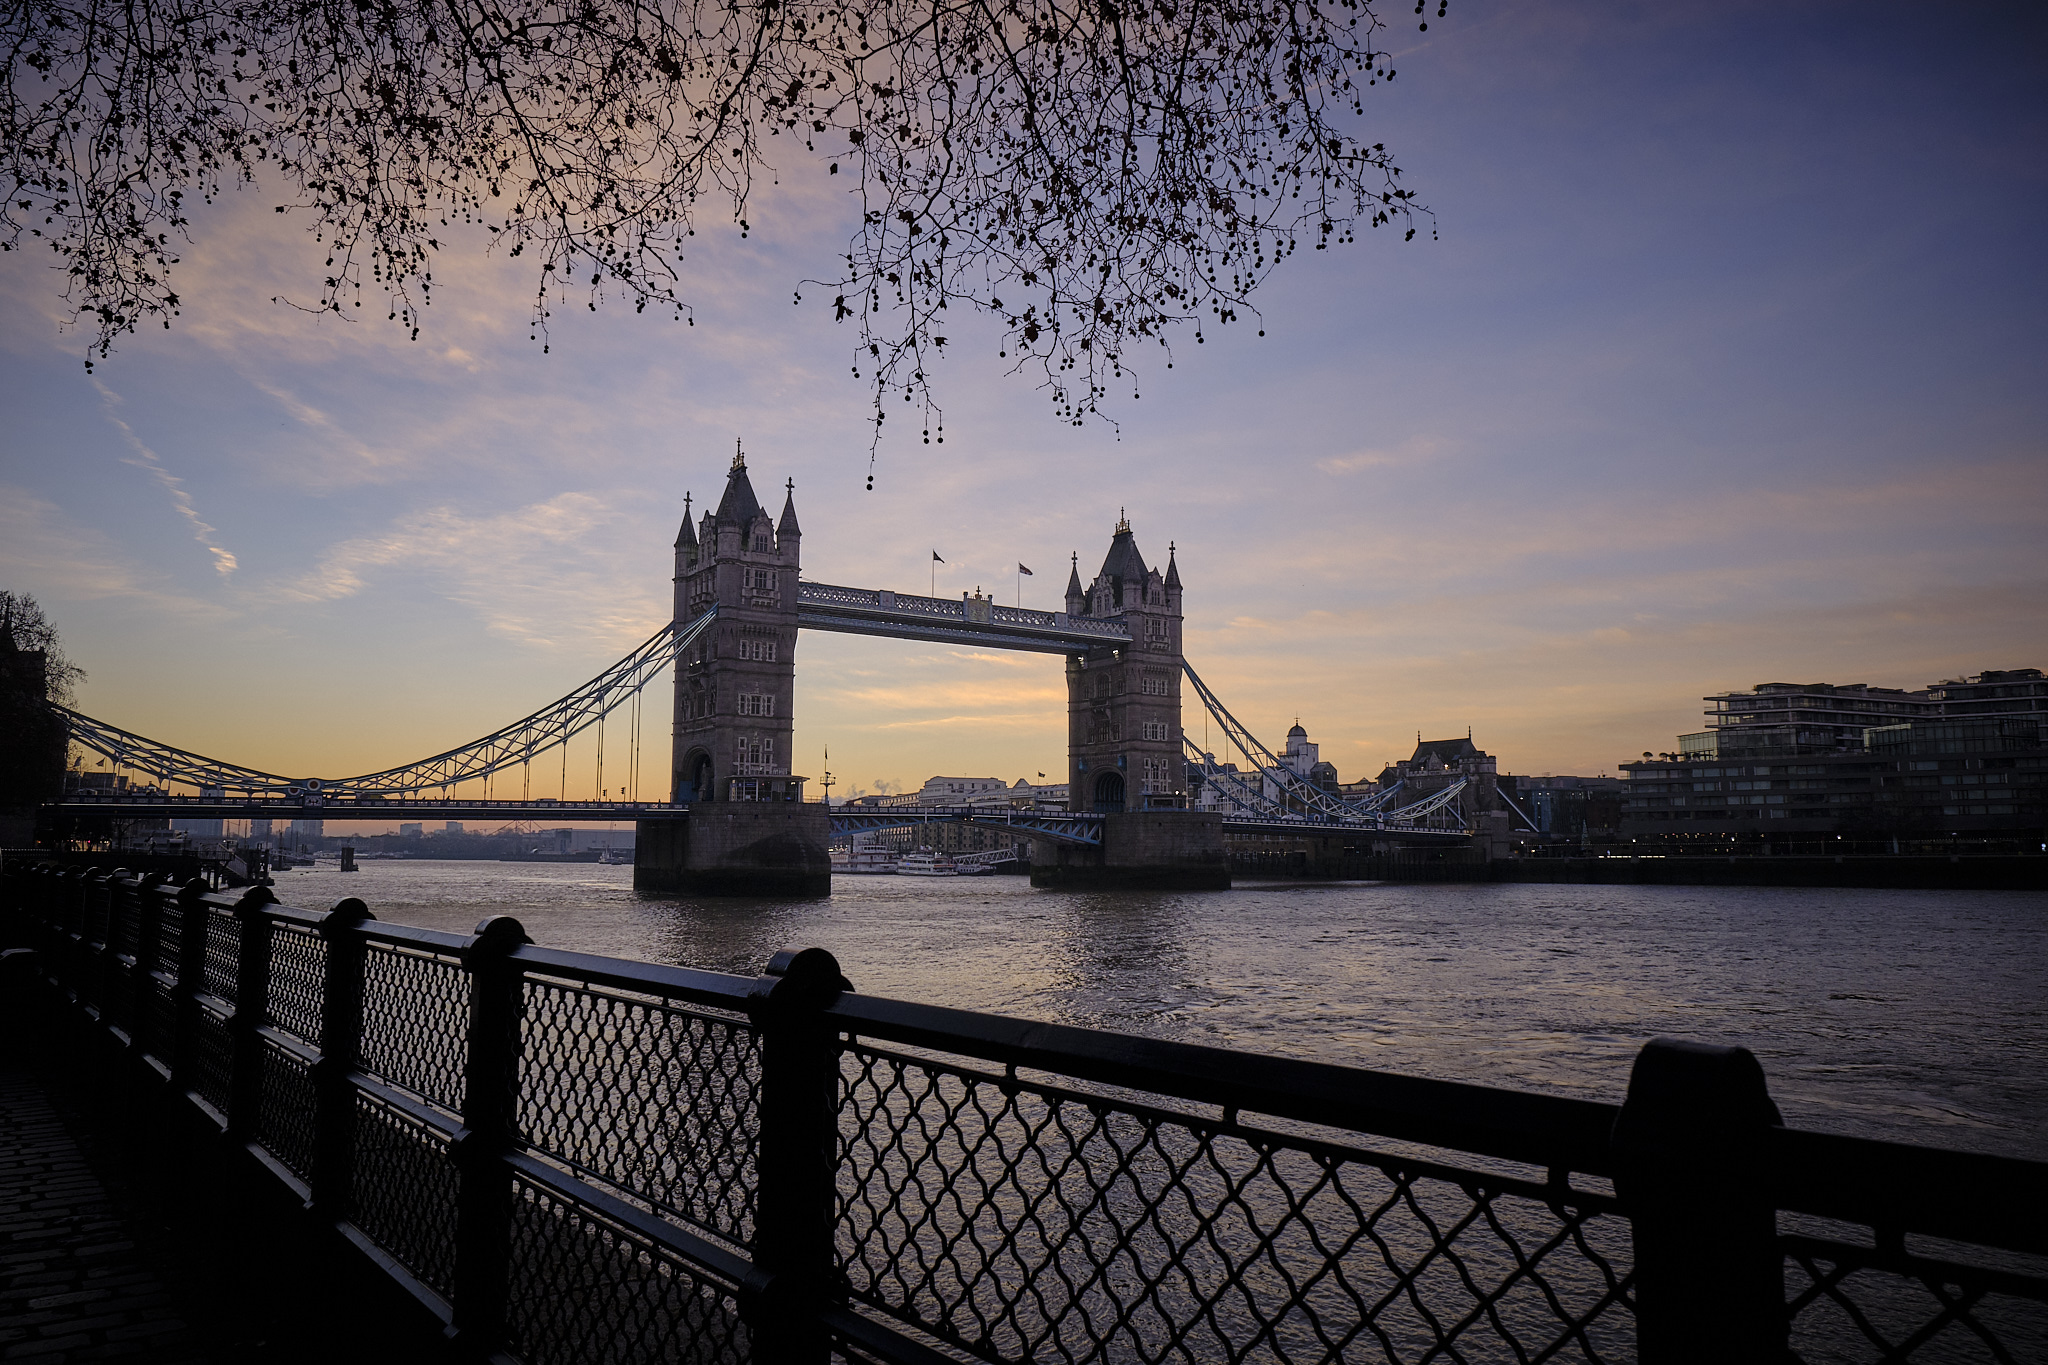 Fuji X-T3 16-55mm @16mm Dawn over Tower Bridge on the River Thames